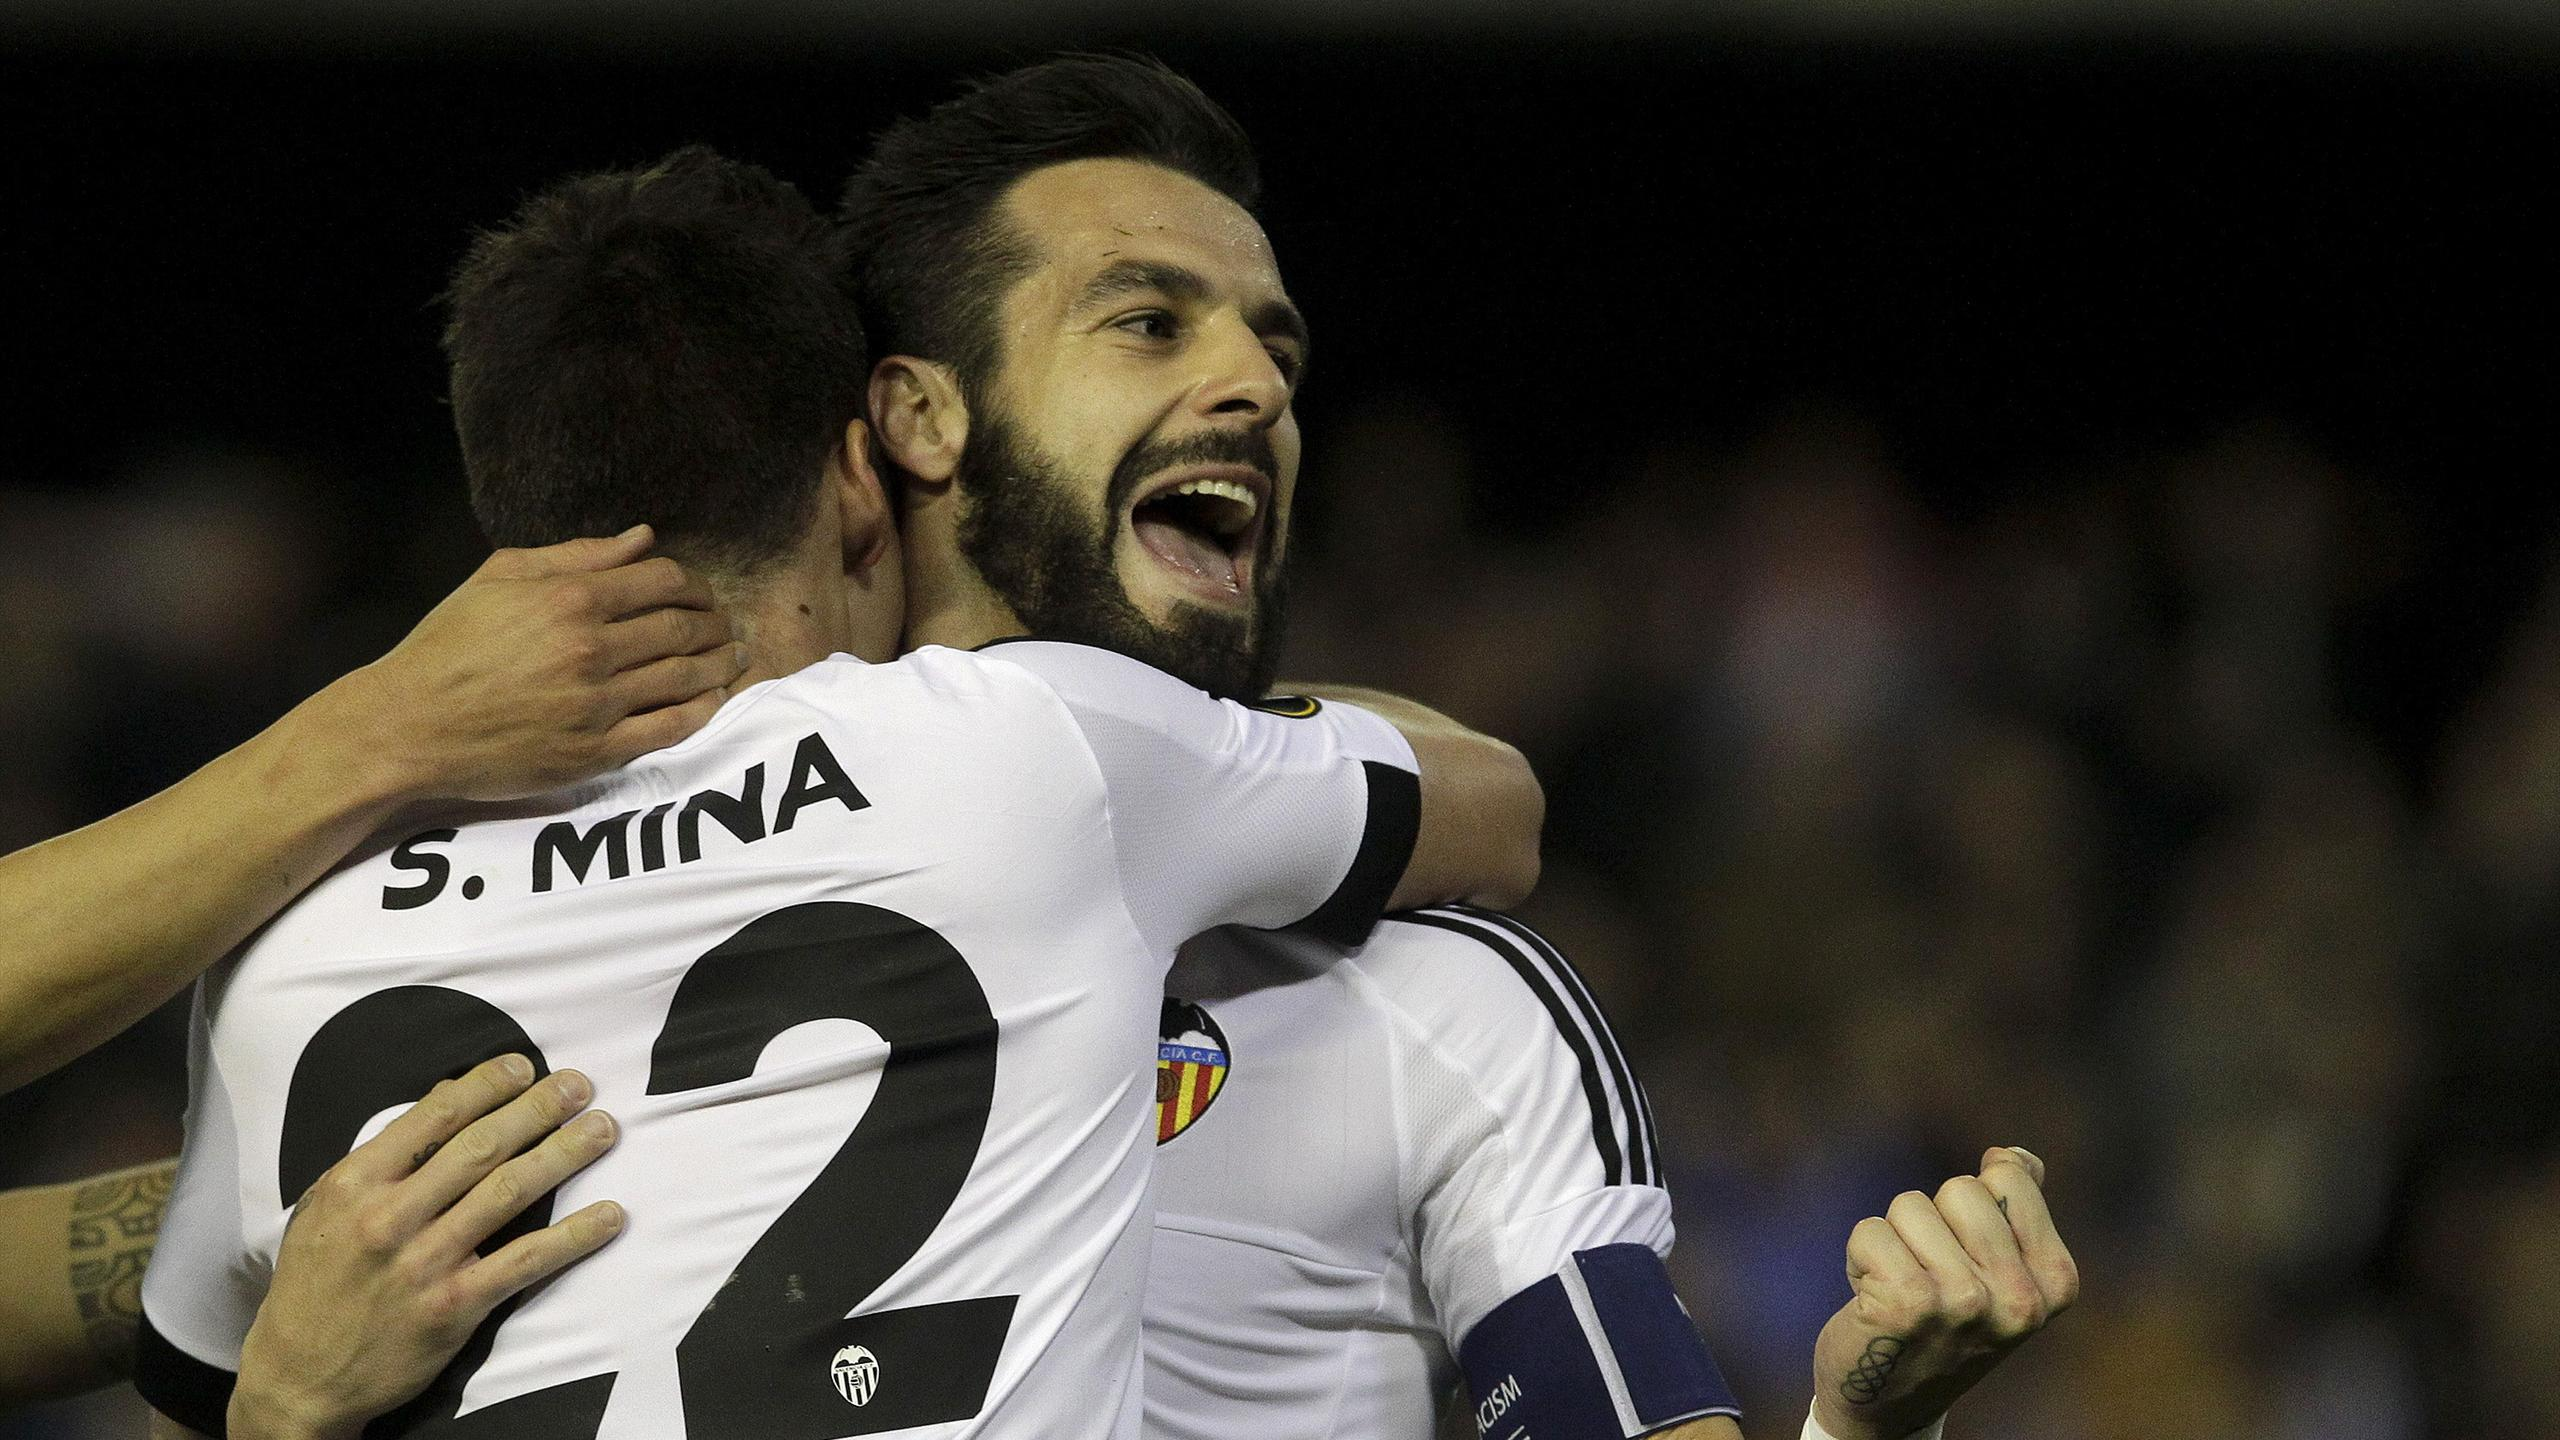 Valencia's Alvaro Negredo celebrates with teammate Santi Mina